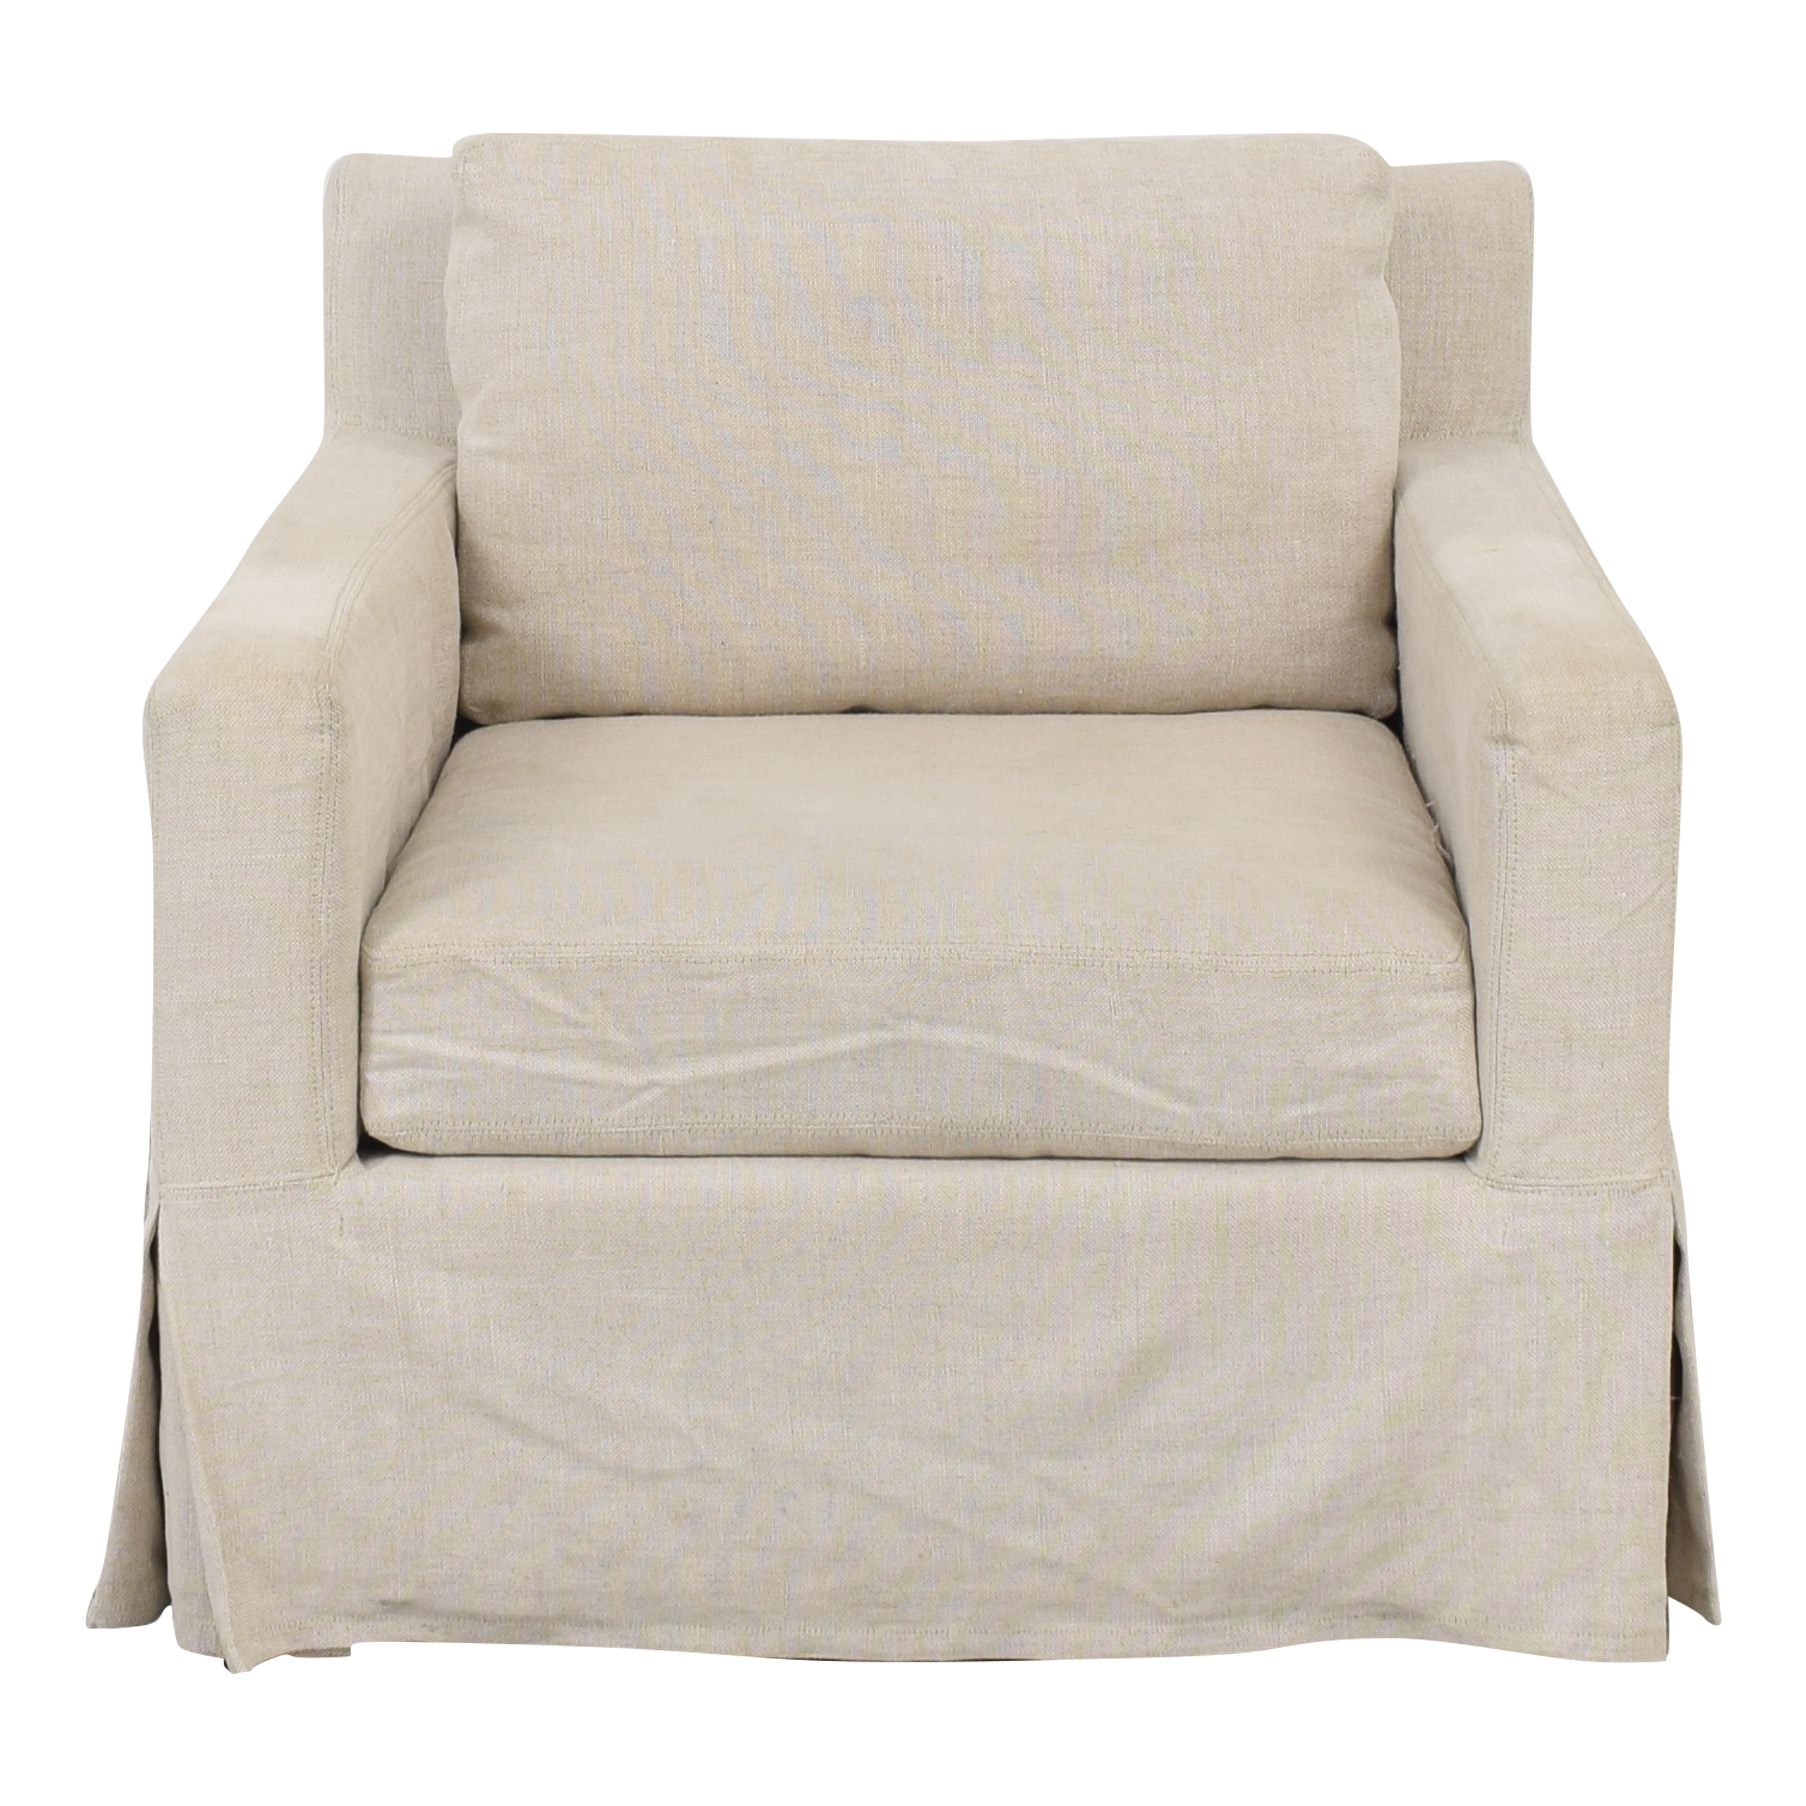 buy Restoration Hardware Belgian Linen Track Arm Slipcovered Chair Restoration Hardware